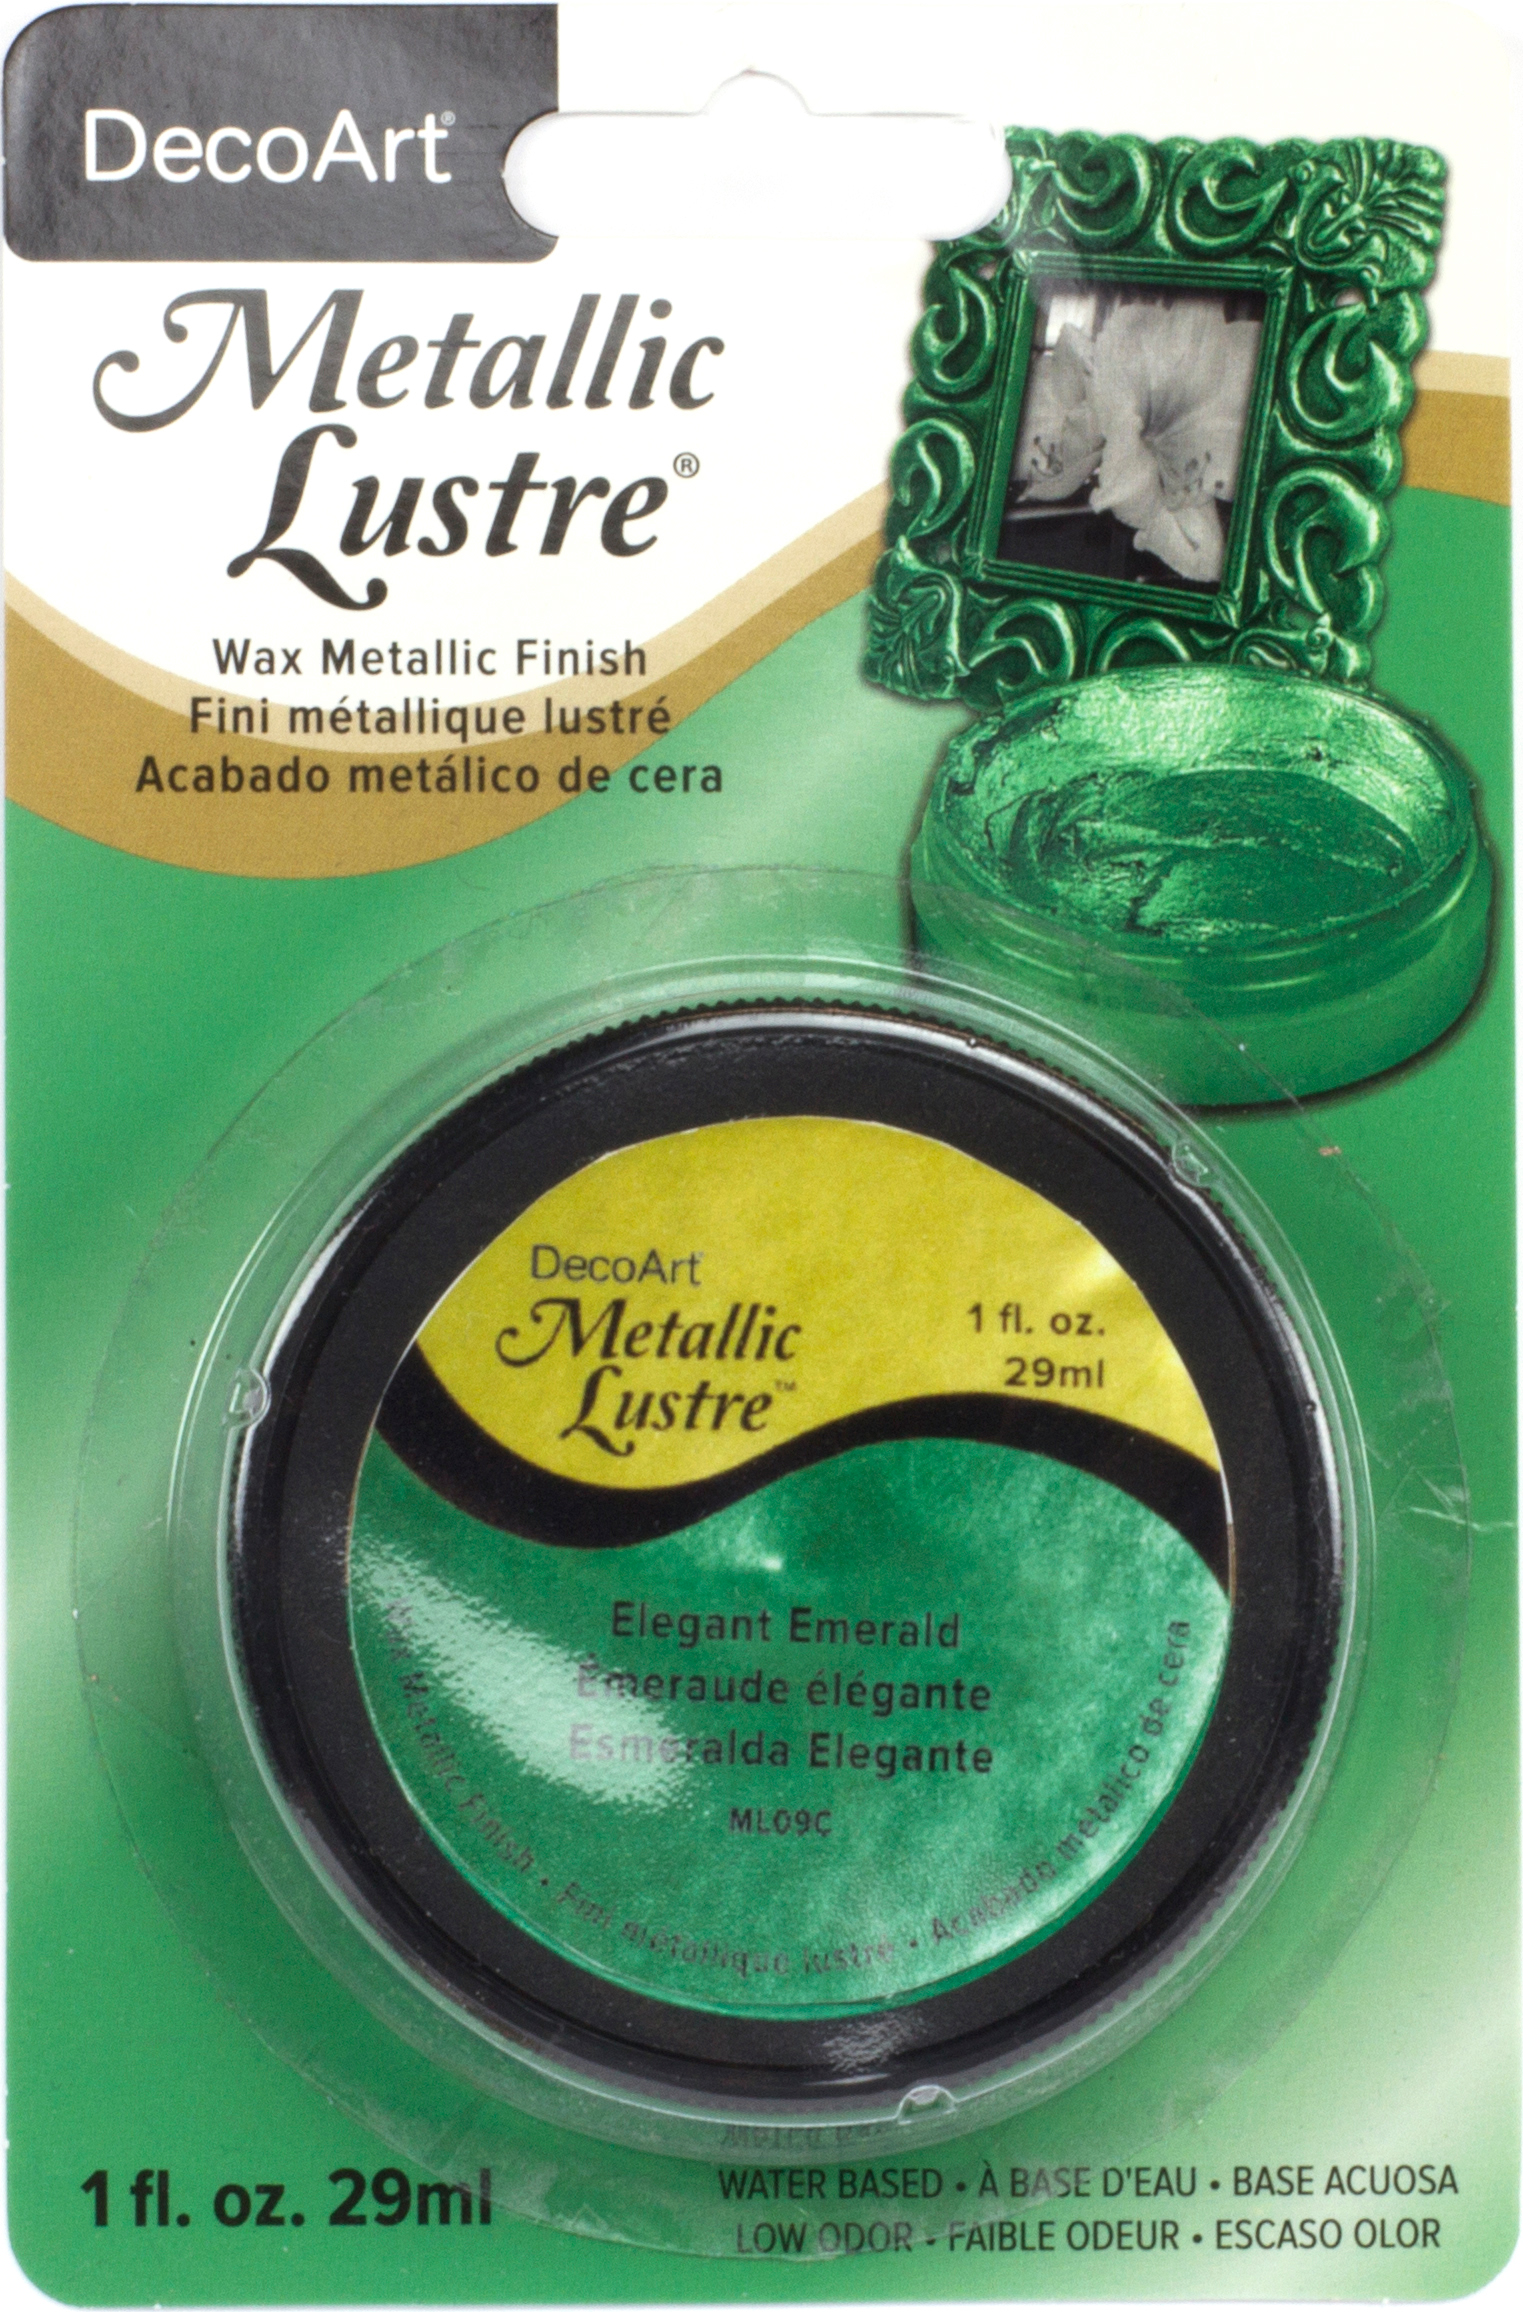 DecoArt Metallic Lustre Wax Finish, 1 oz, Elegant Emerald